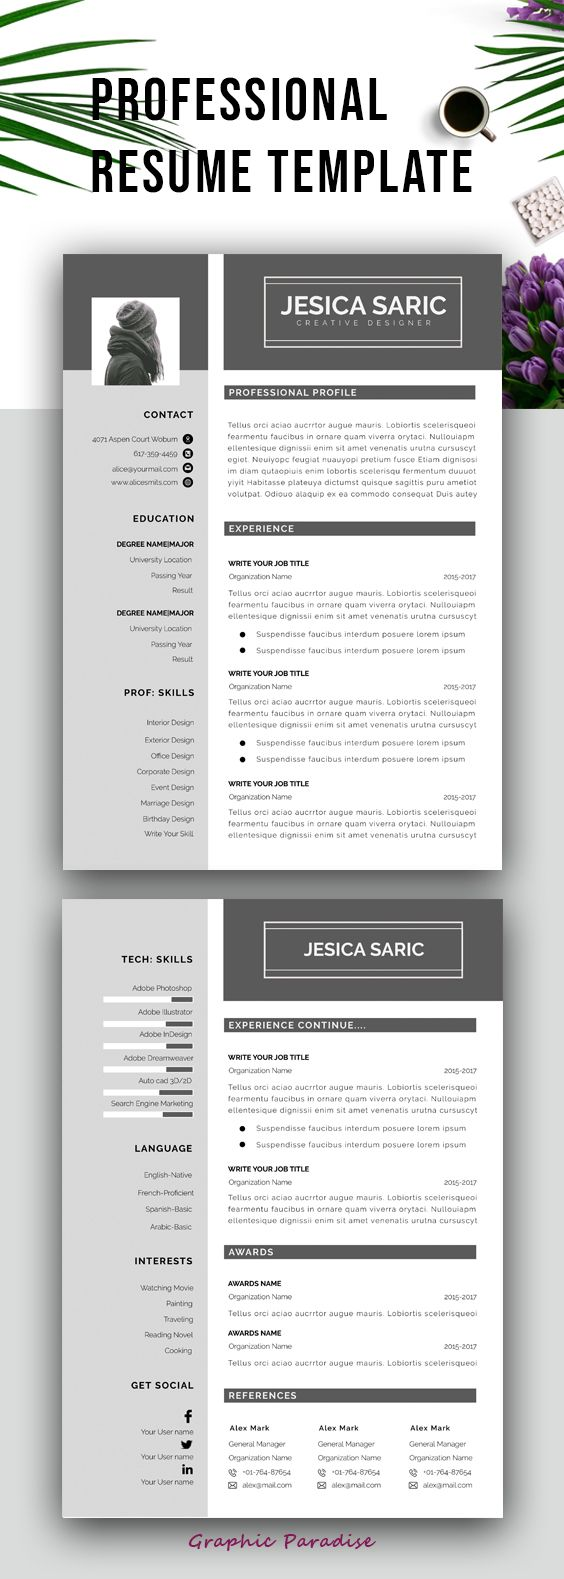 12 best resume templates images on Pinterest | Resume templates ...